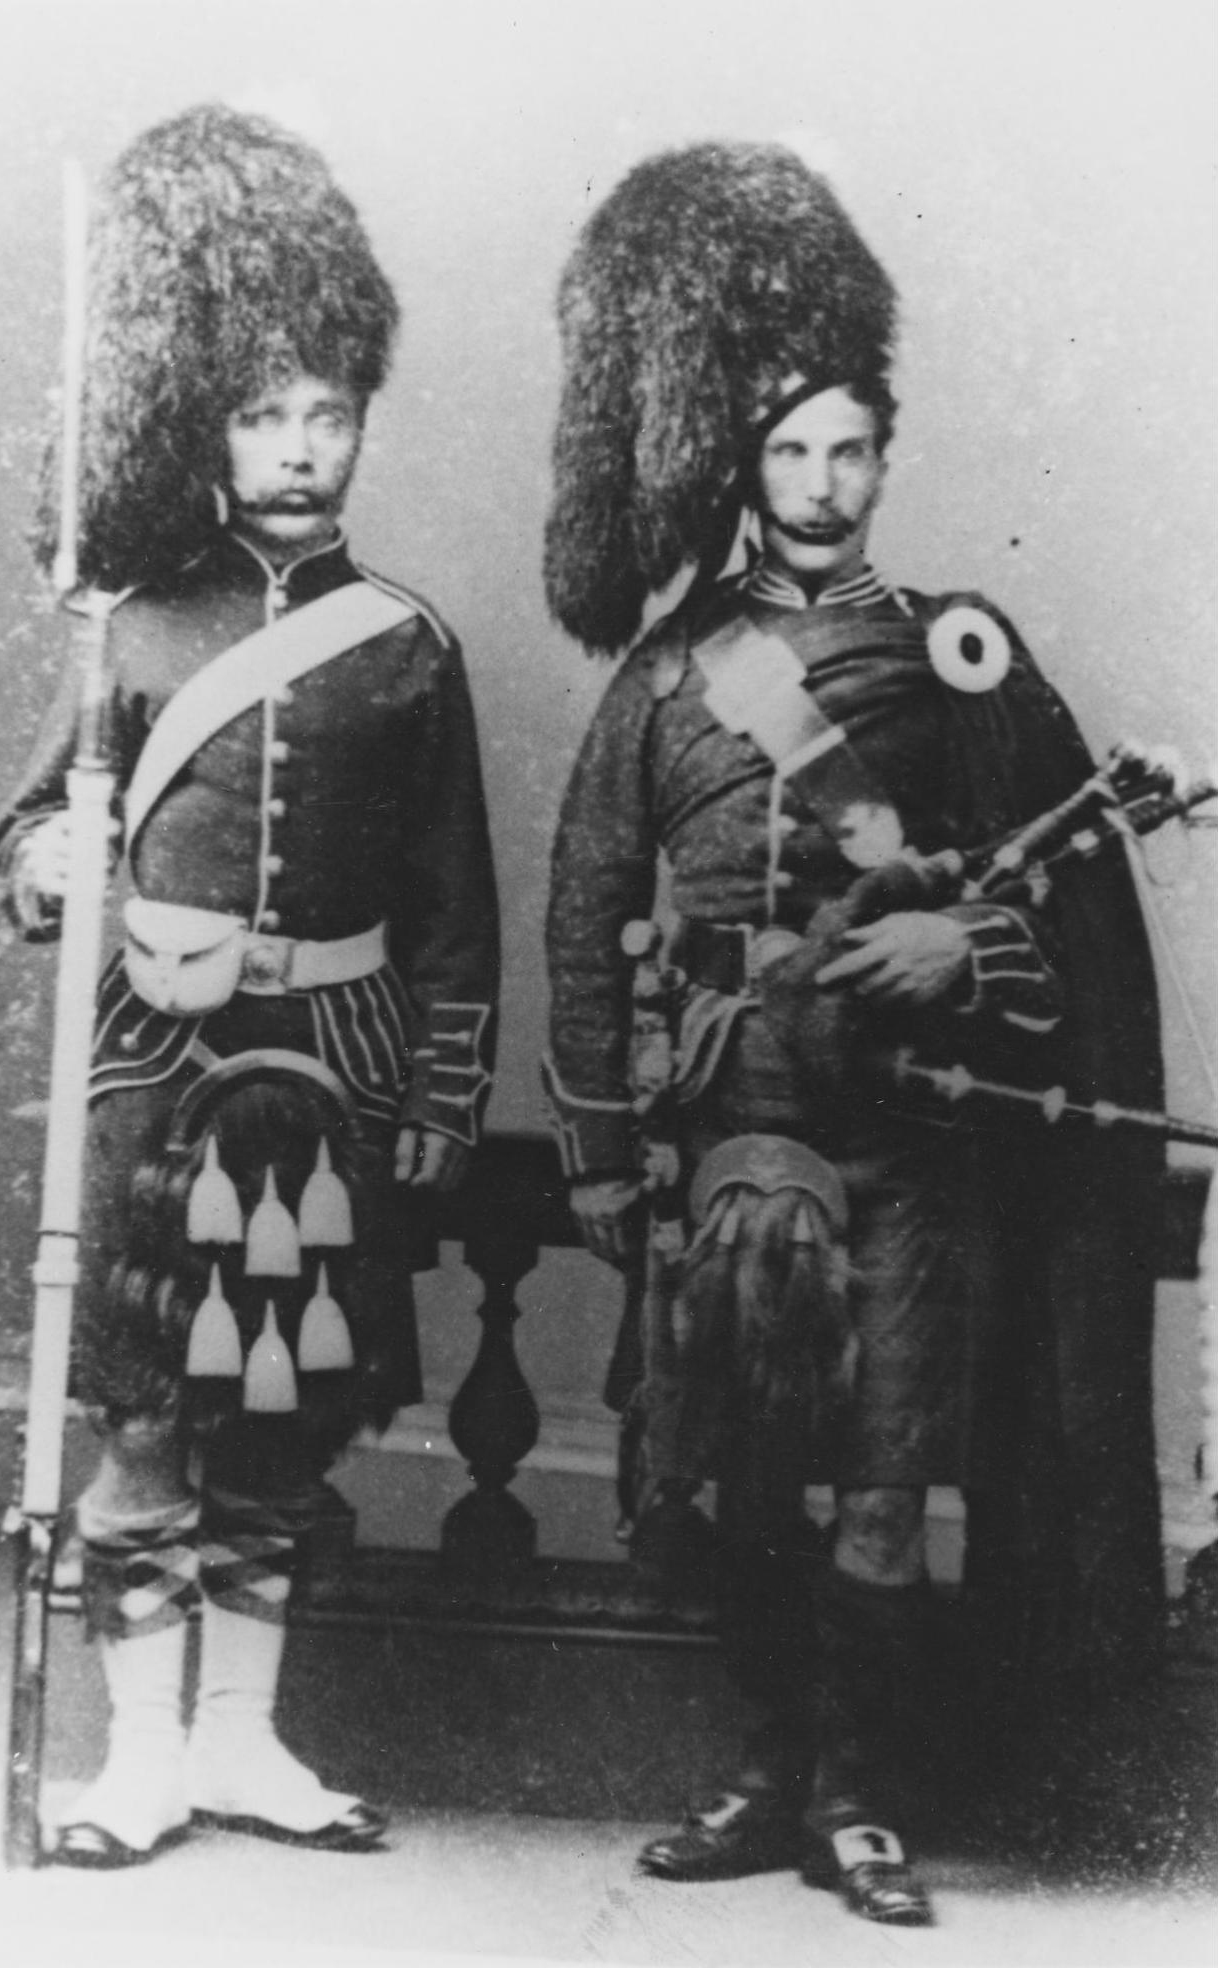 Photograph of a private and a piper, 93rd Highlanders, c. 1865 in the collection at National War Museum.